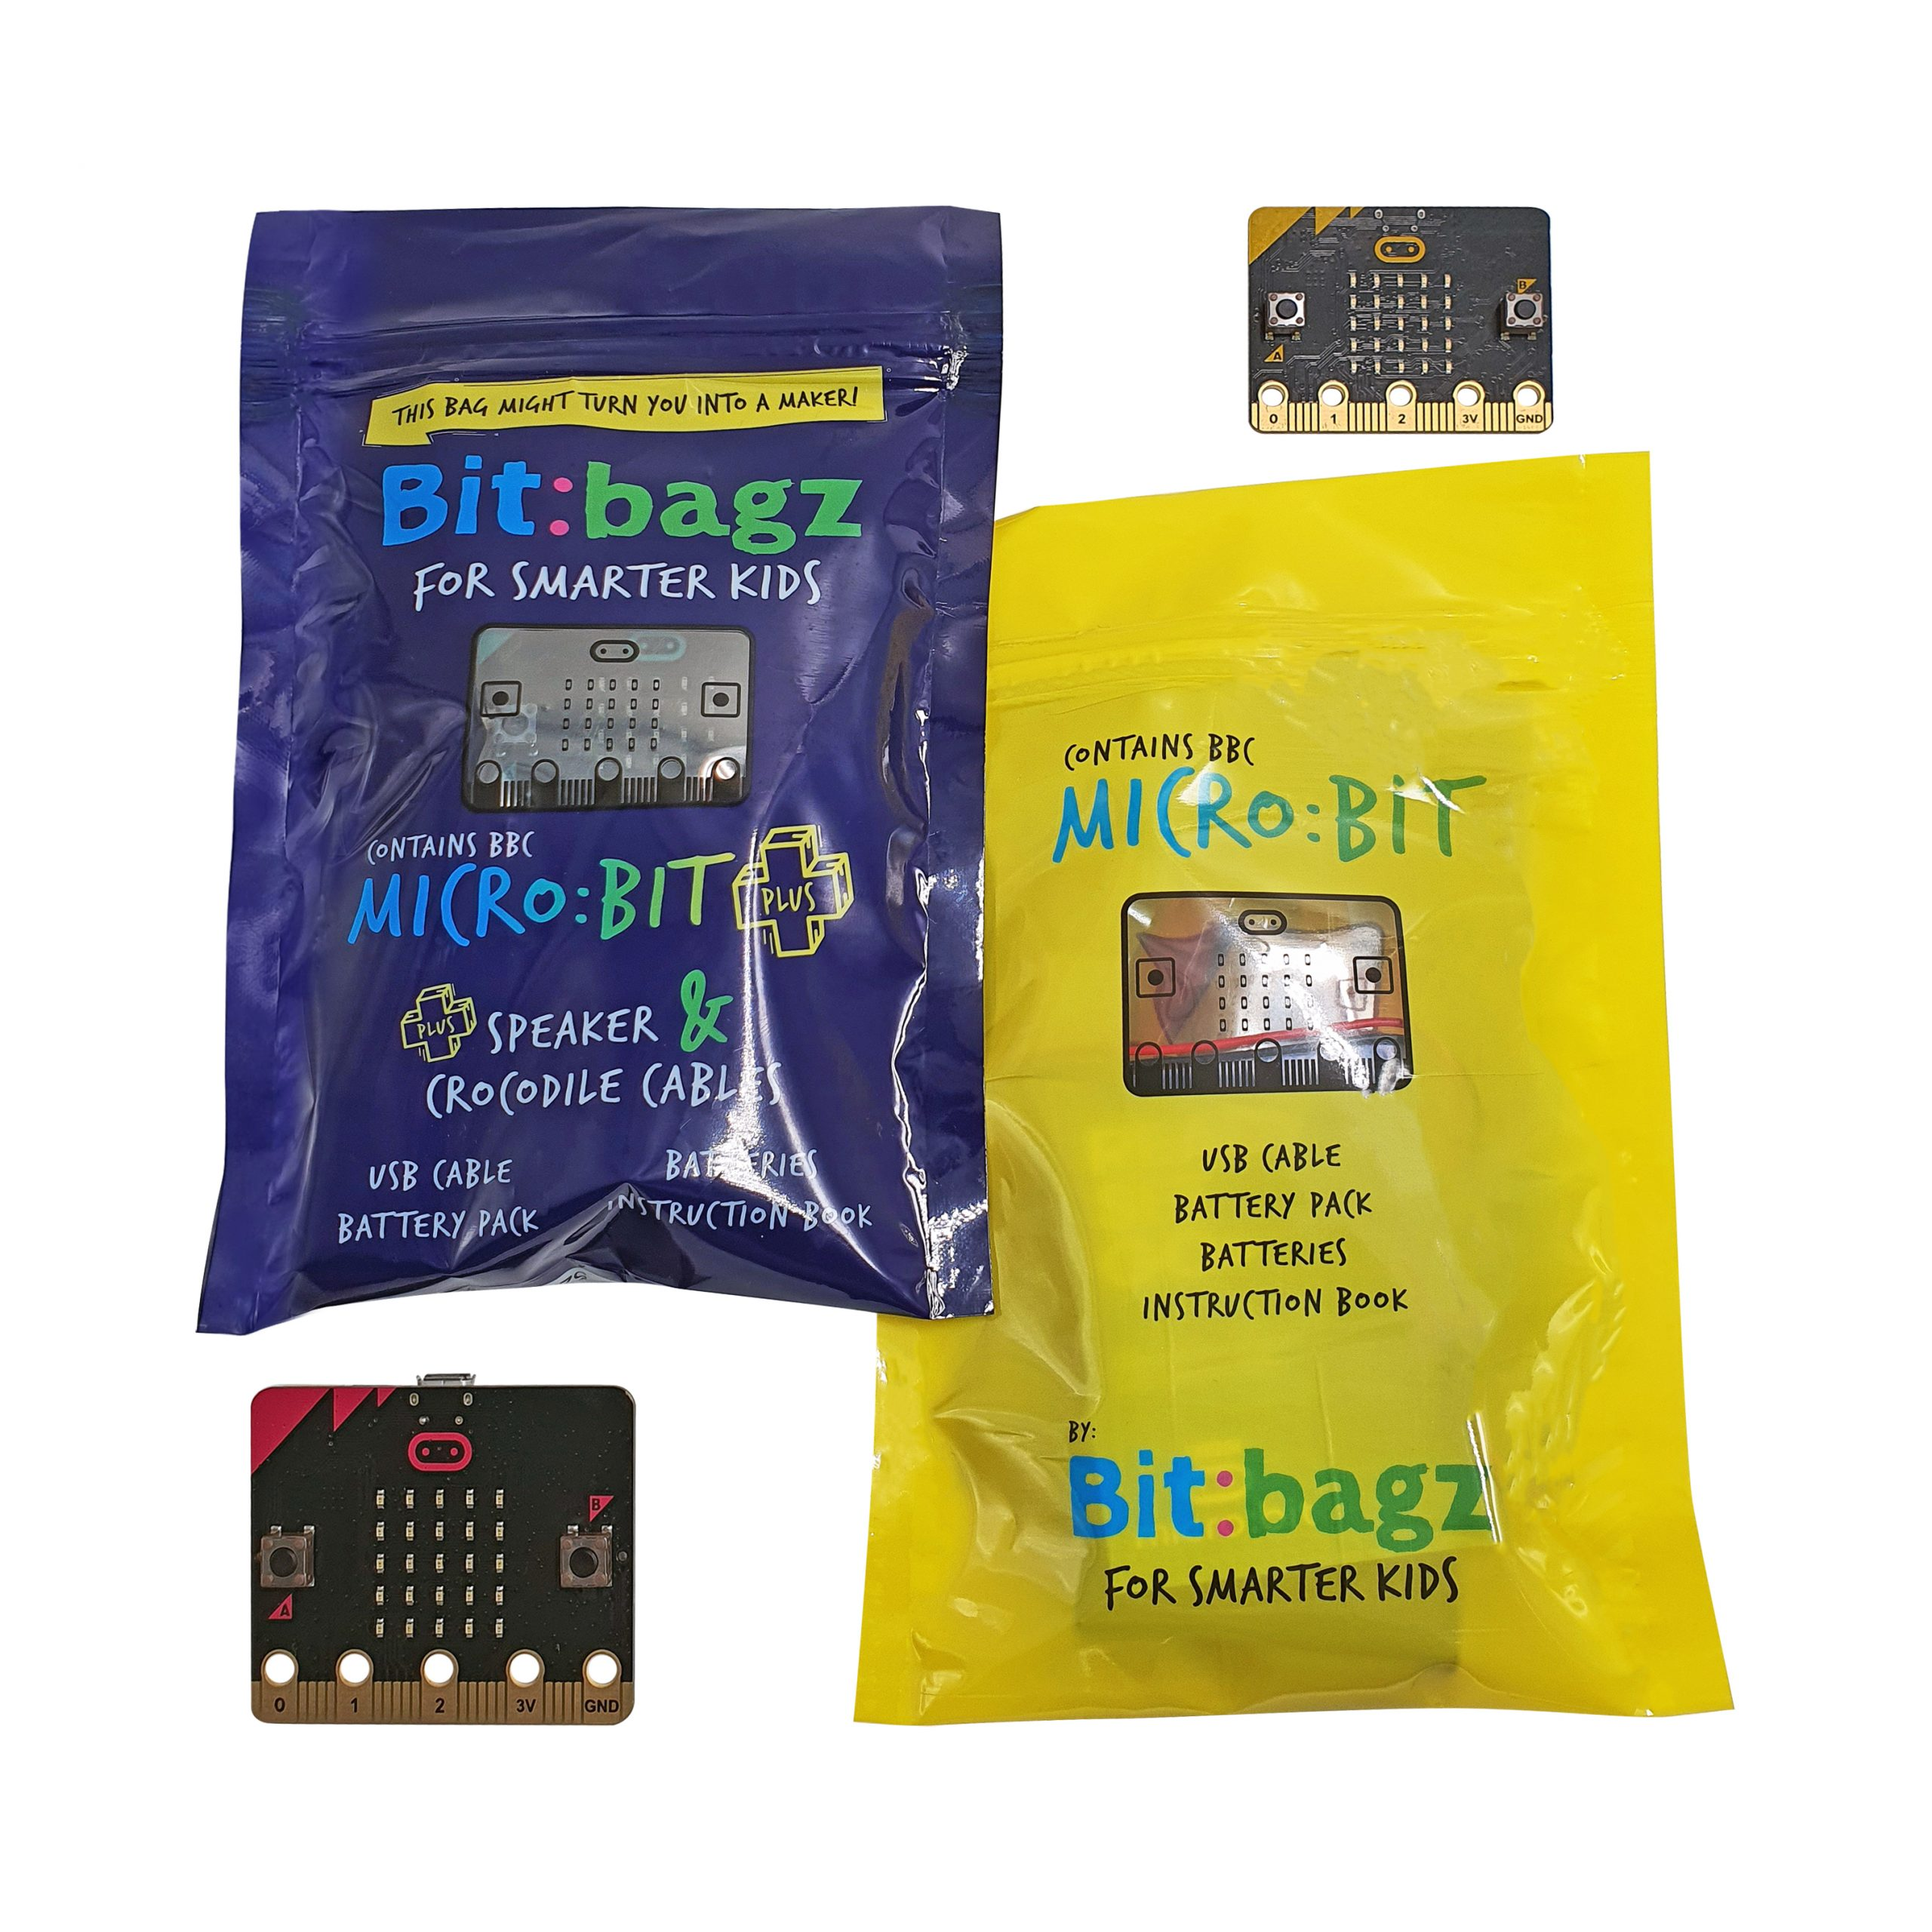 microbit Plus set